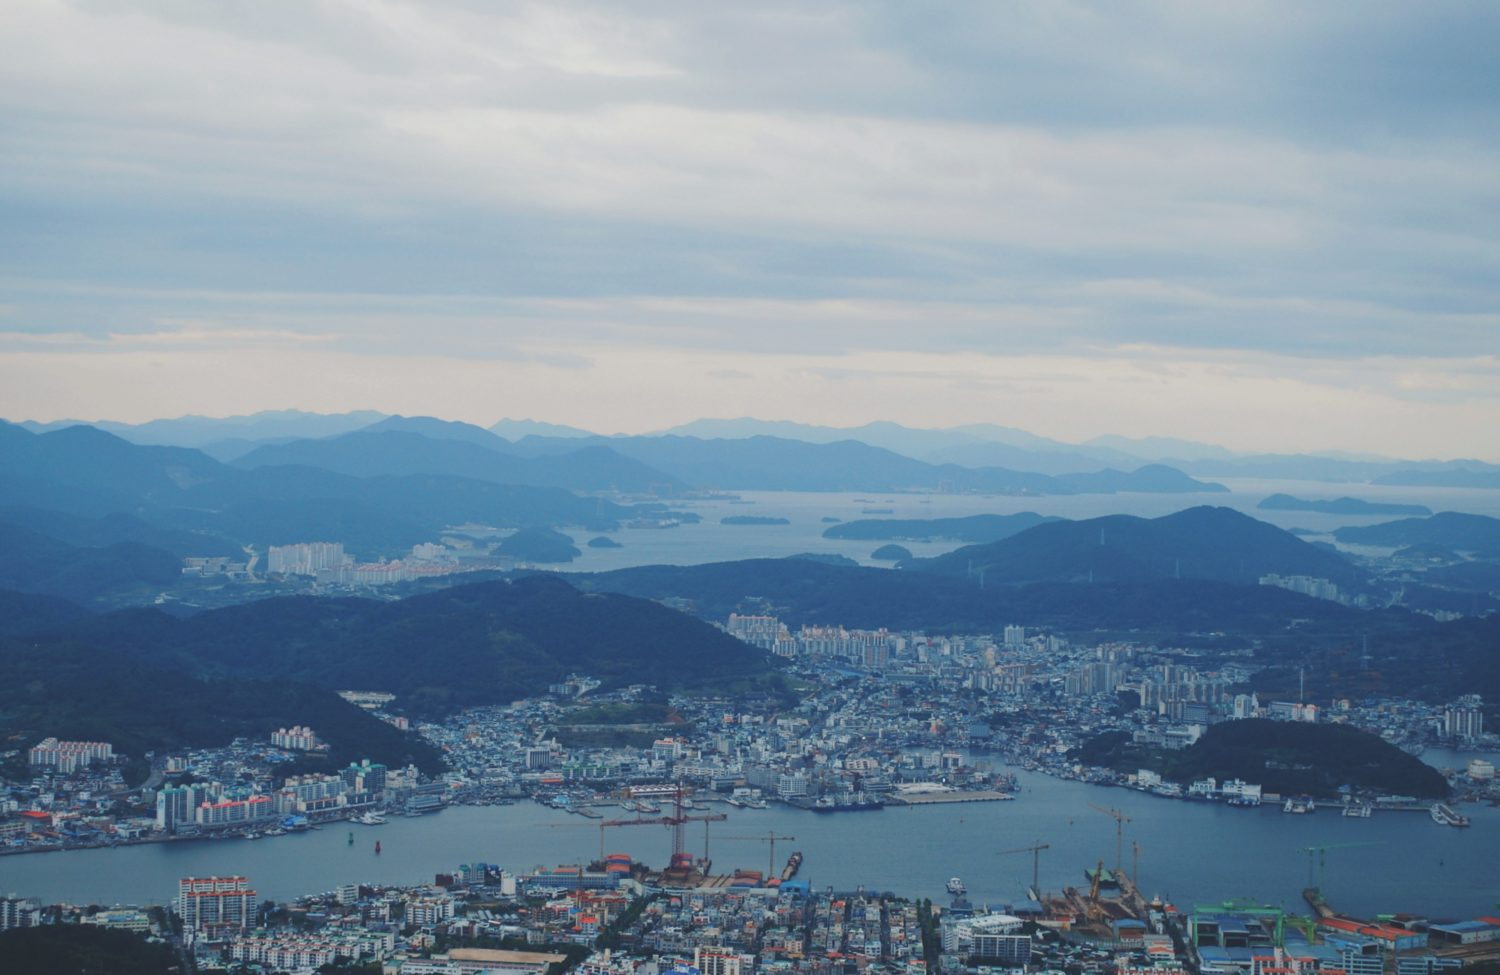 Getting back into long form blogging, here's a little anecdote about my misadventures solo traveling to Tongyeong, a port city in the south of Korea.